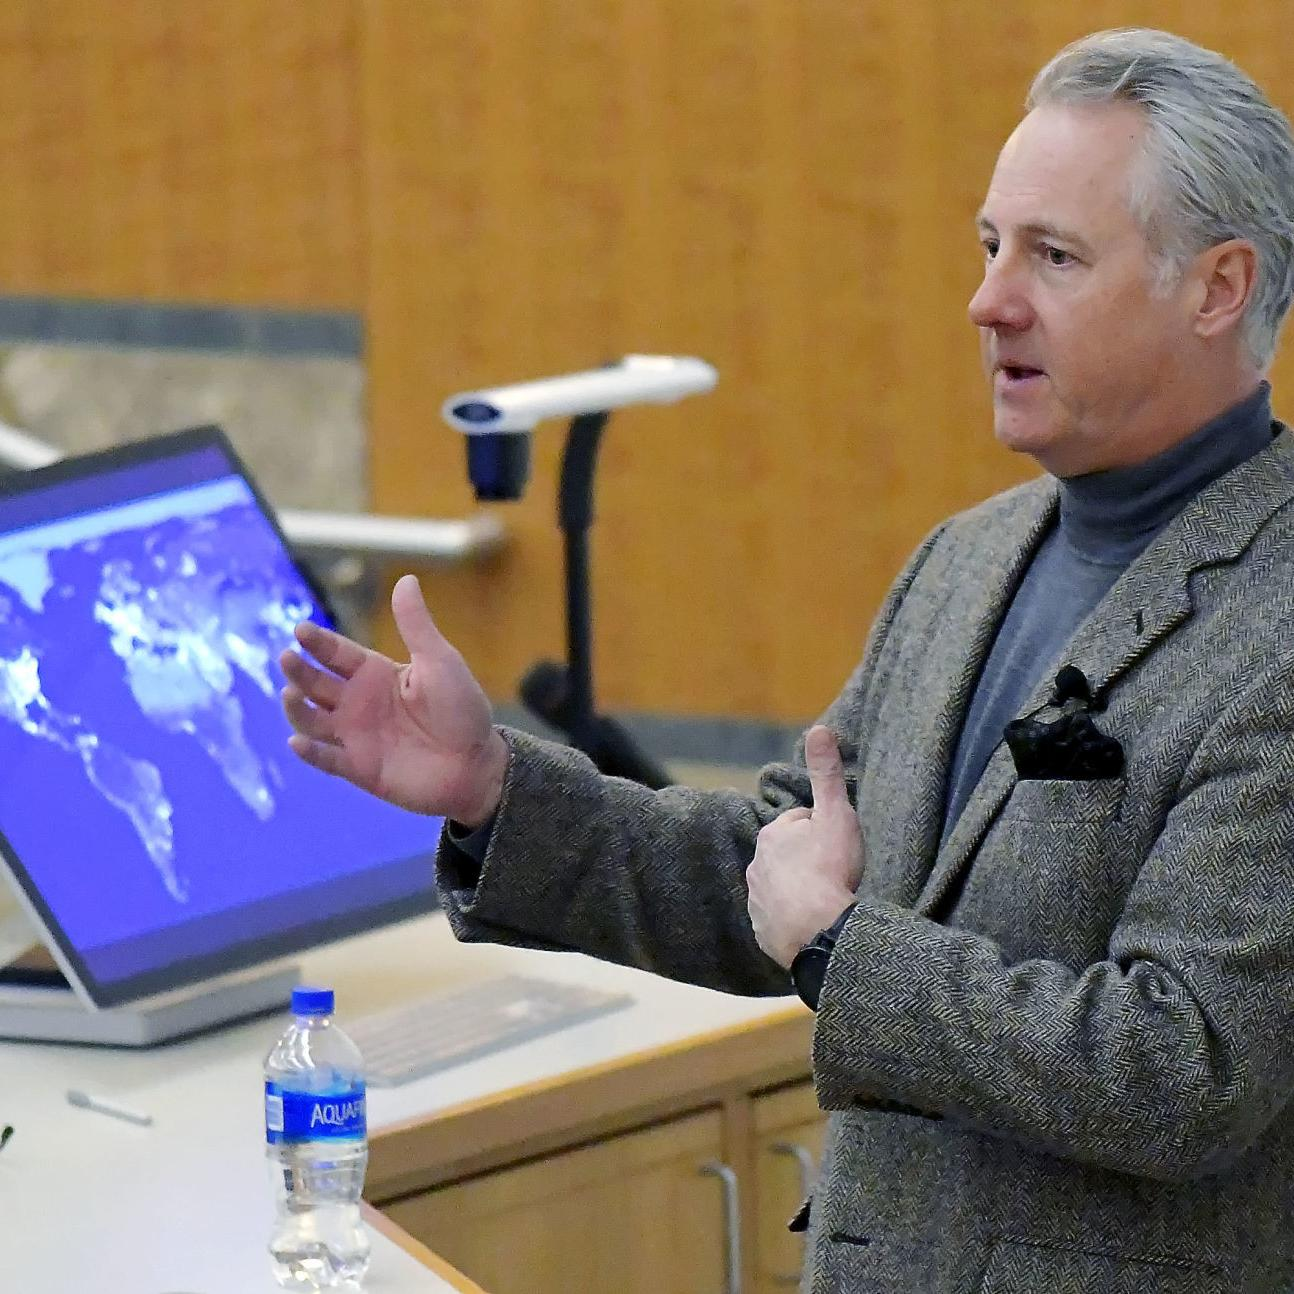 Washington policymaker discusses nuclear energy at USU